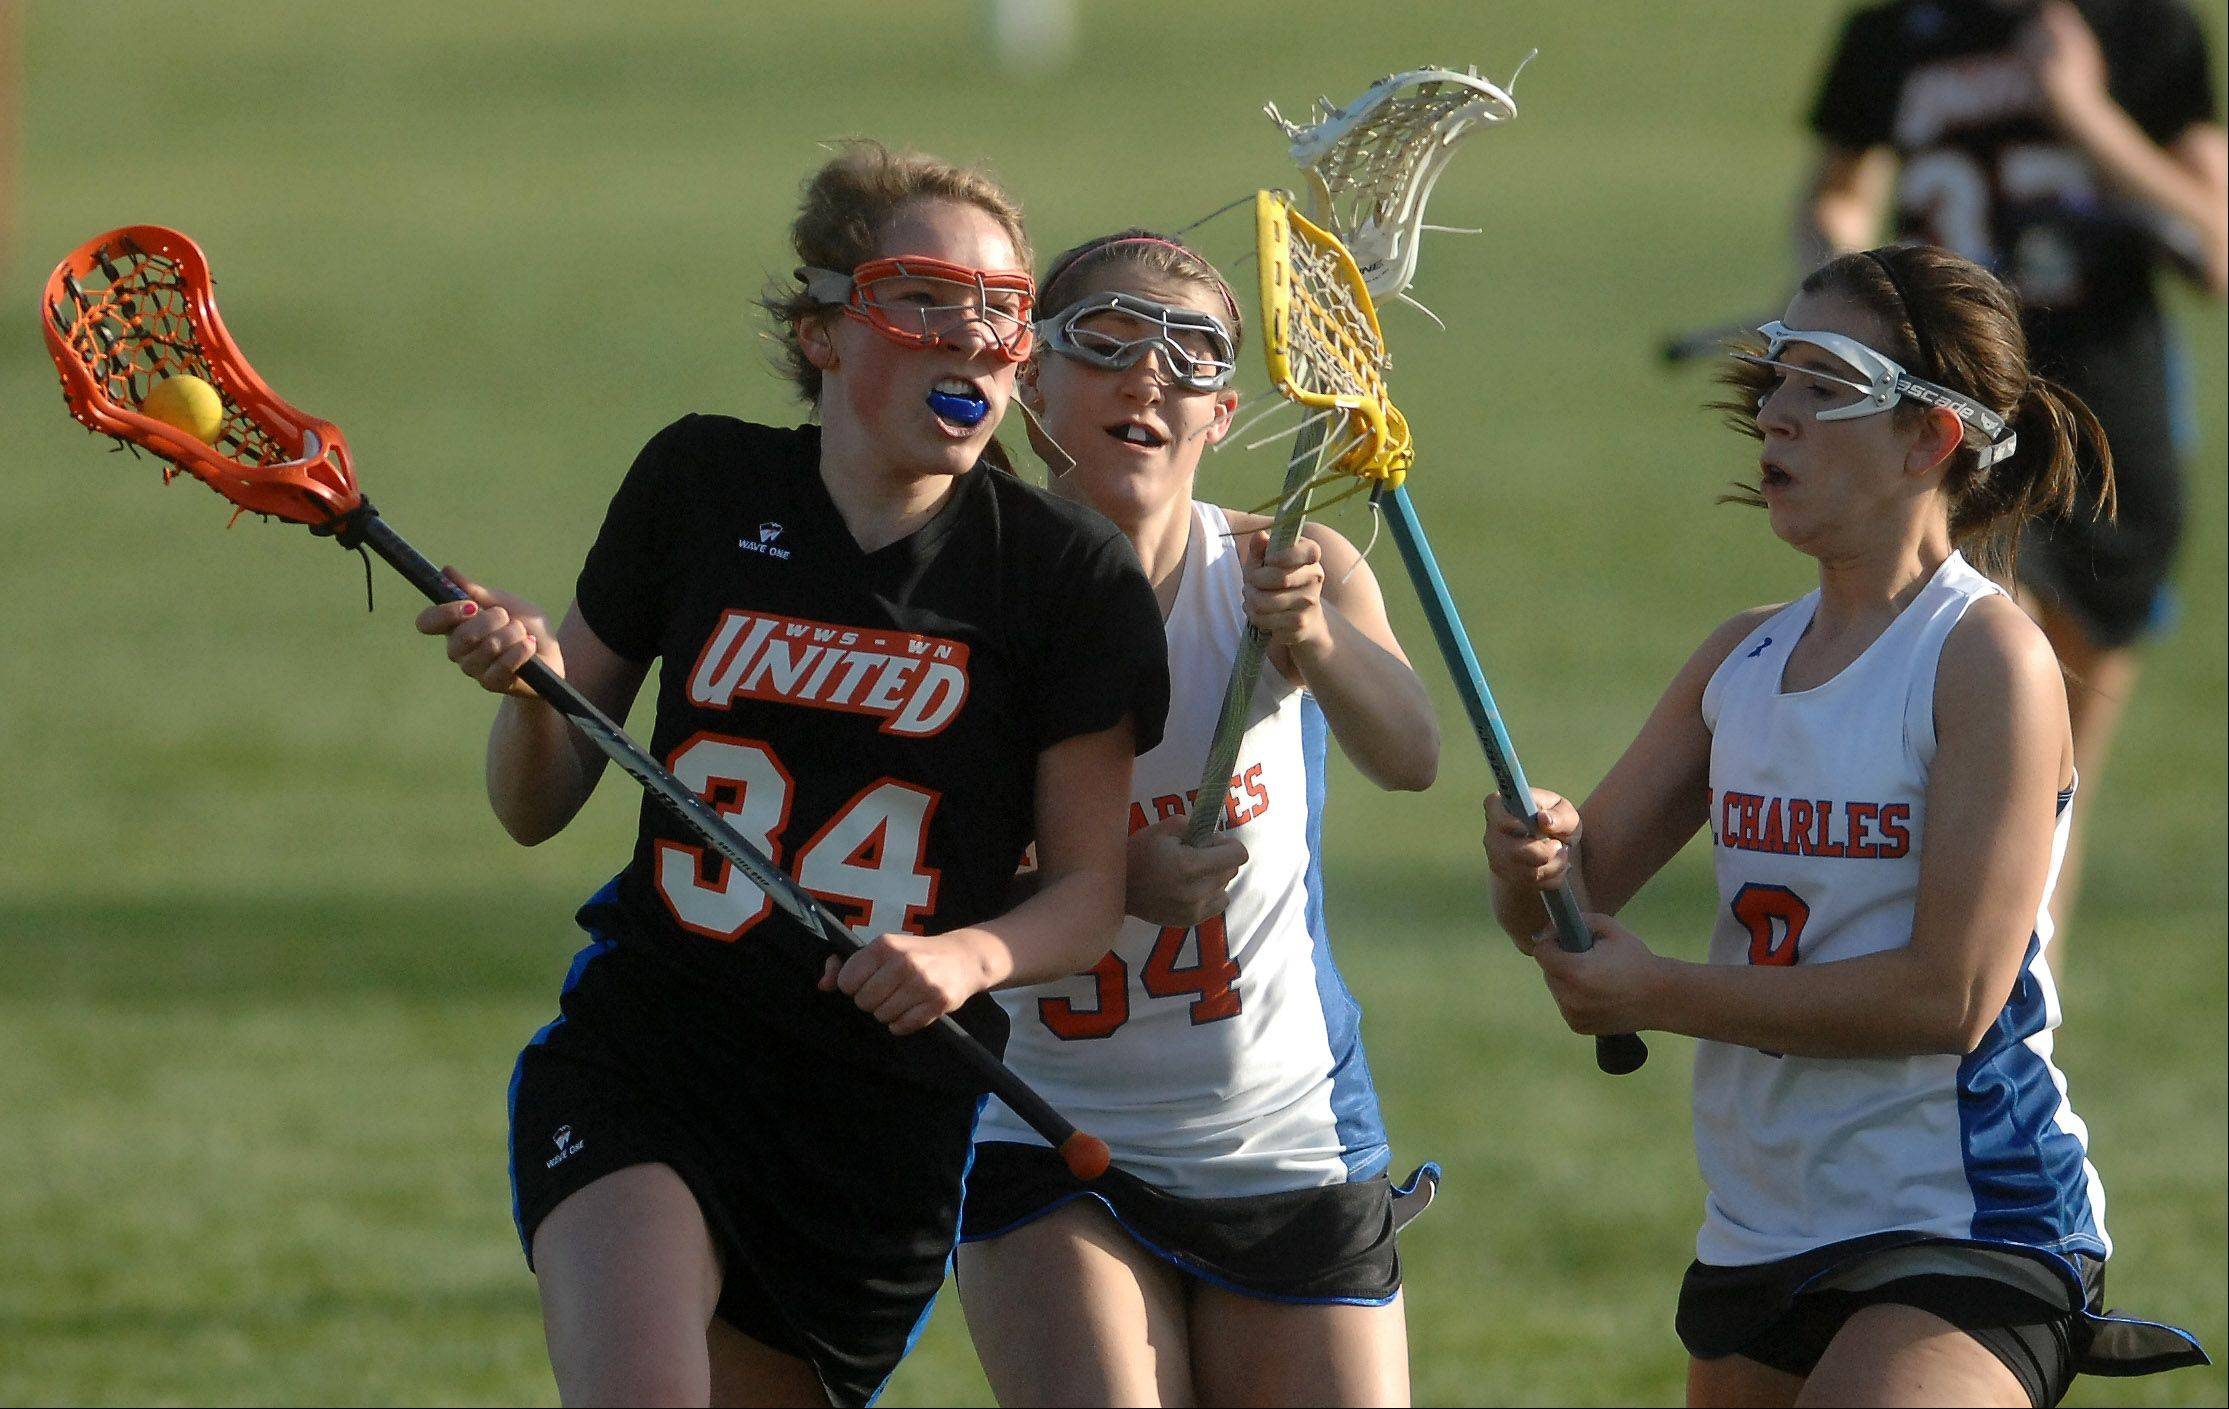 Wheaton United's Mary Budz prepares to shoot before scoring against St. Charles co-op.